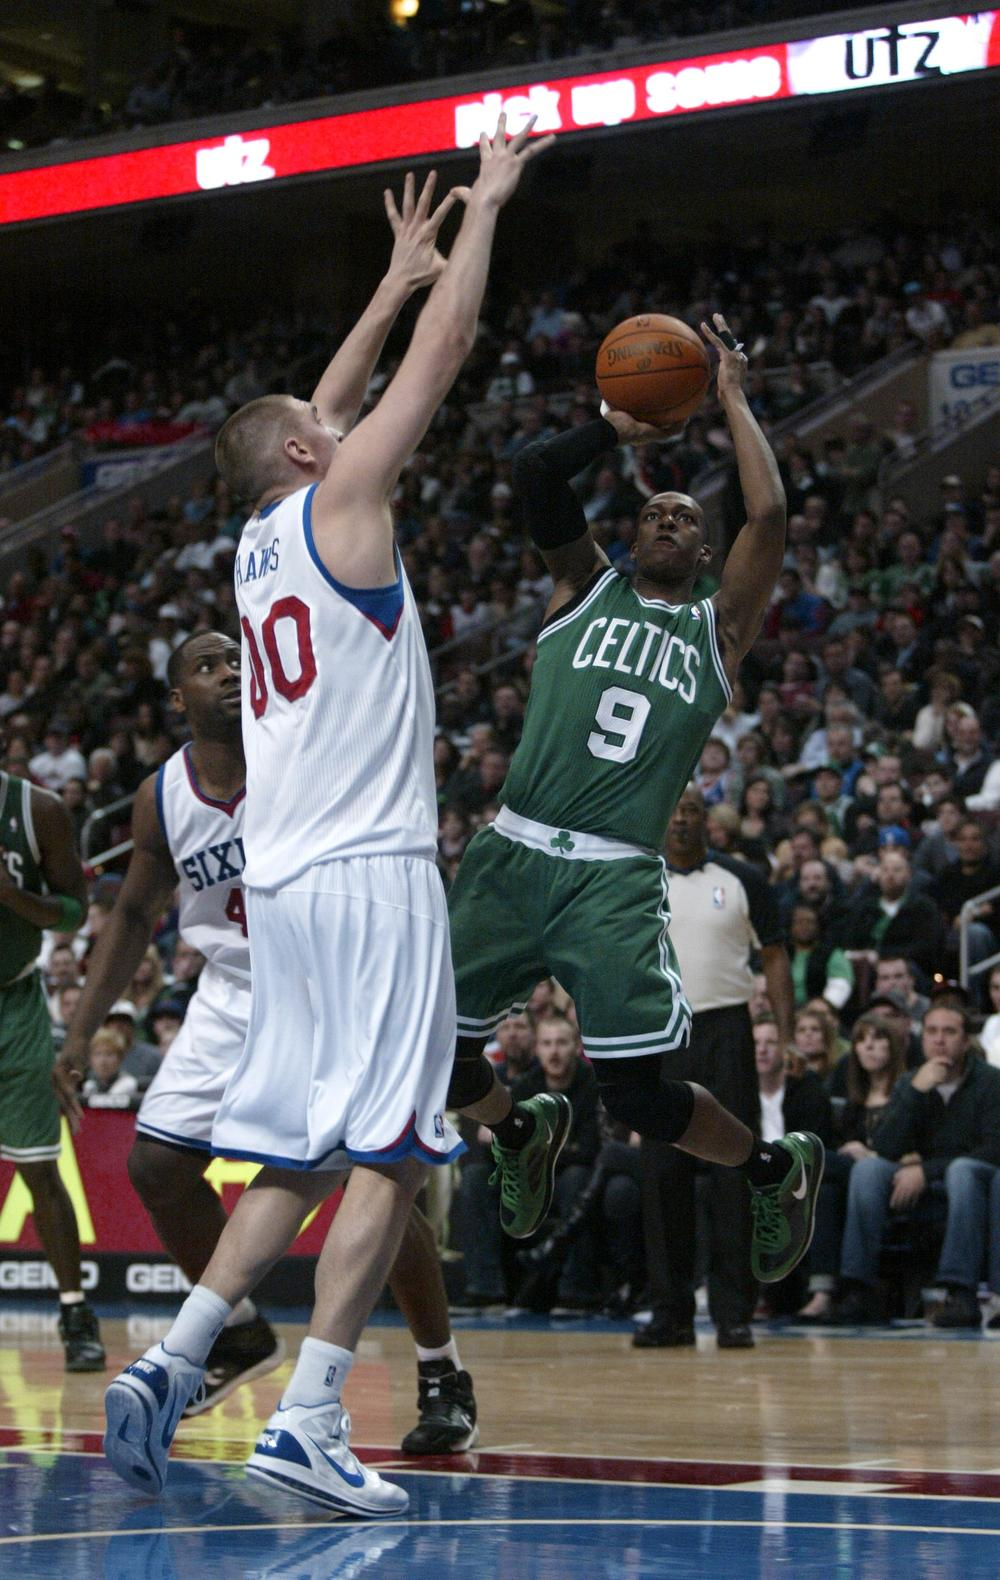 Celtics' Rajon Rondo shoots over Philadelphia 76ers' Spencer Hawes in the first half, Friday in Philadelphia. (AP)